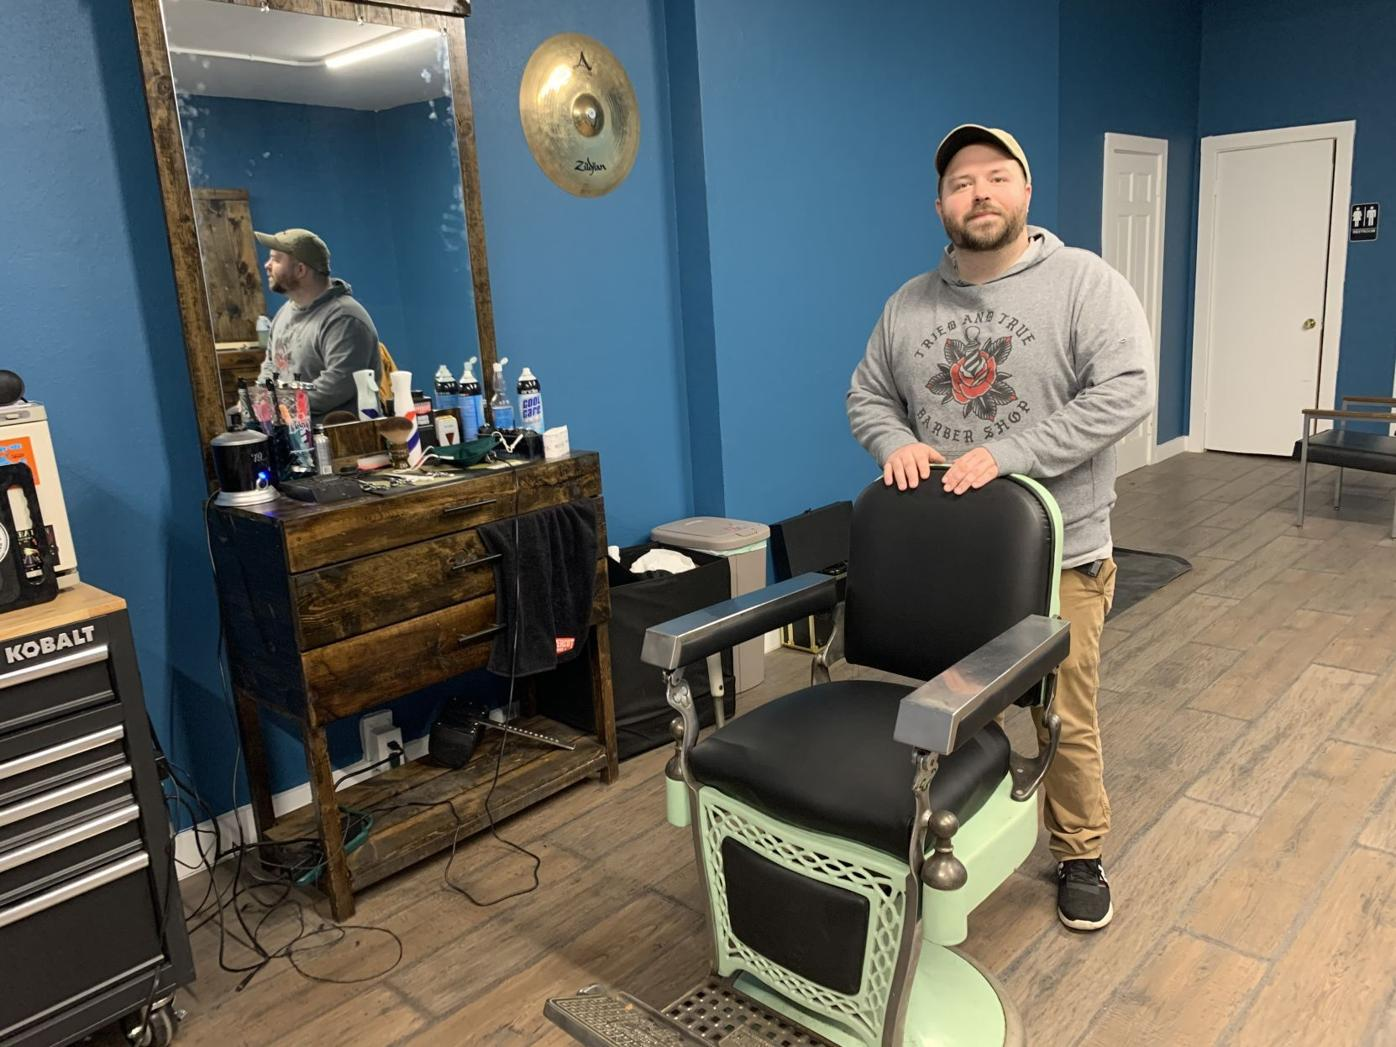 Zach Allen, owner of Silver Lining Barbershop